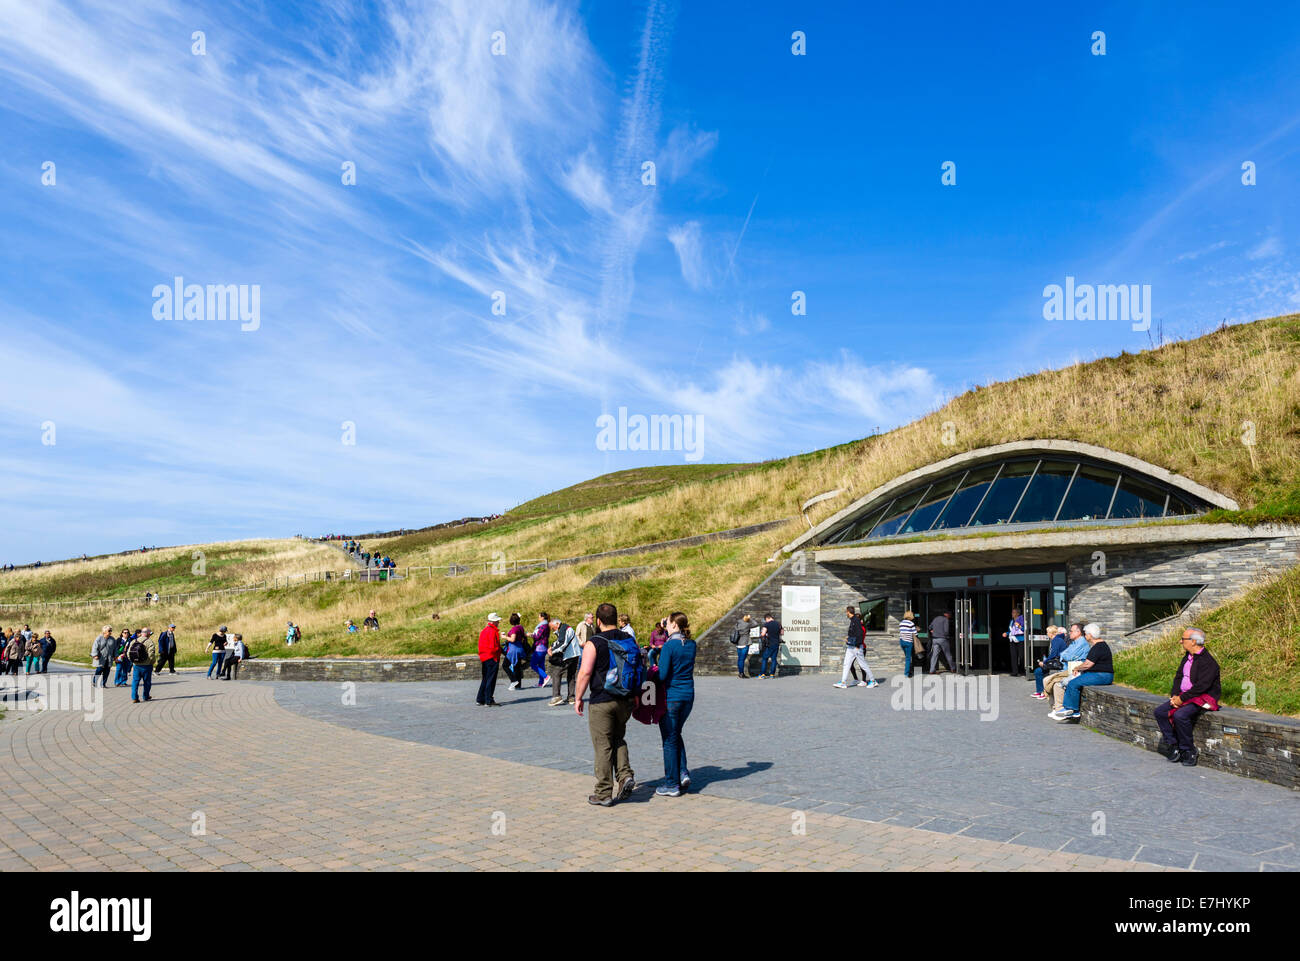 Visitor Centre at the Cliffs of Moher, The Burren, County Clare, Republic of Ireland - Stock Image